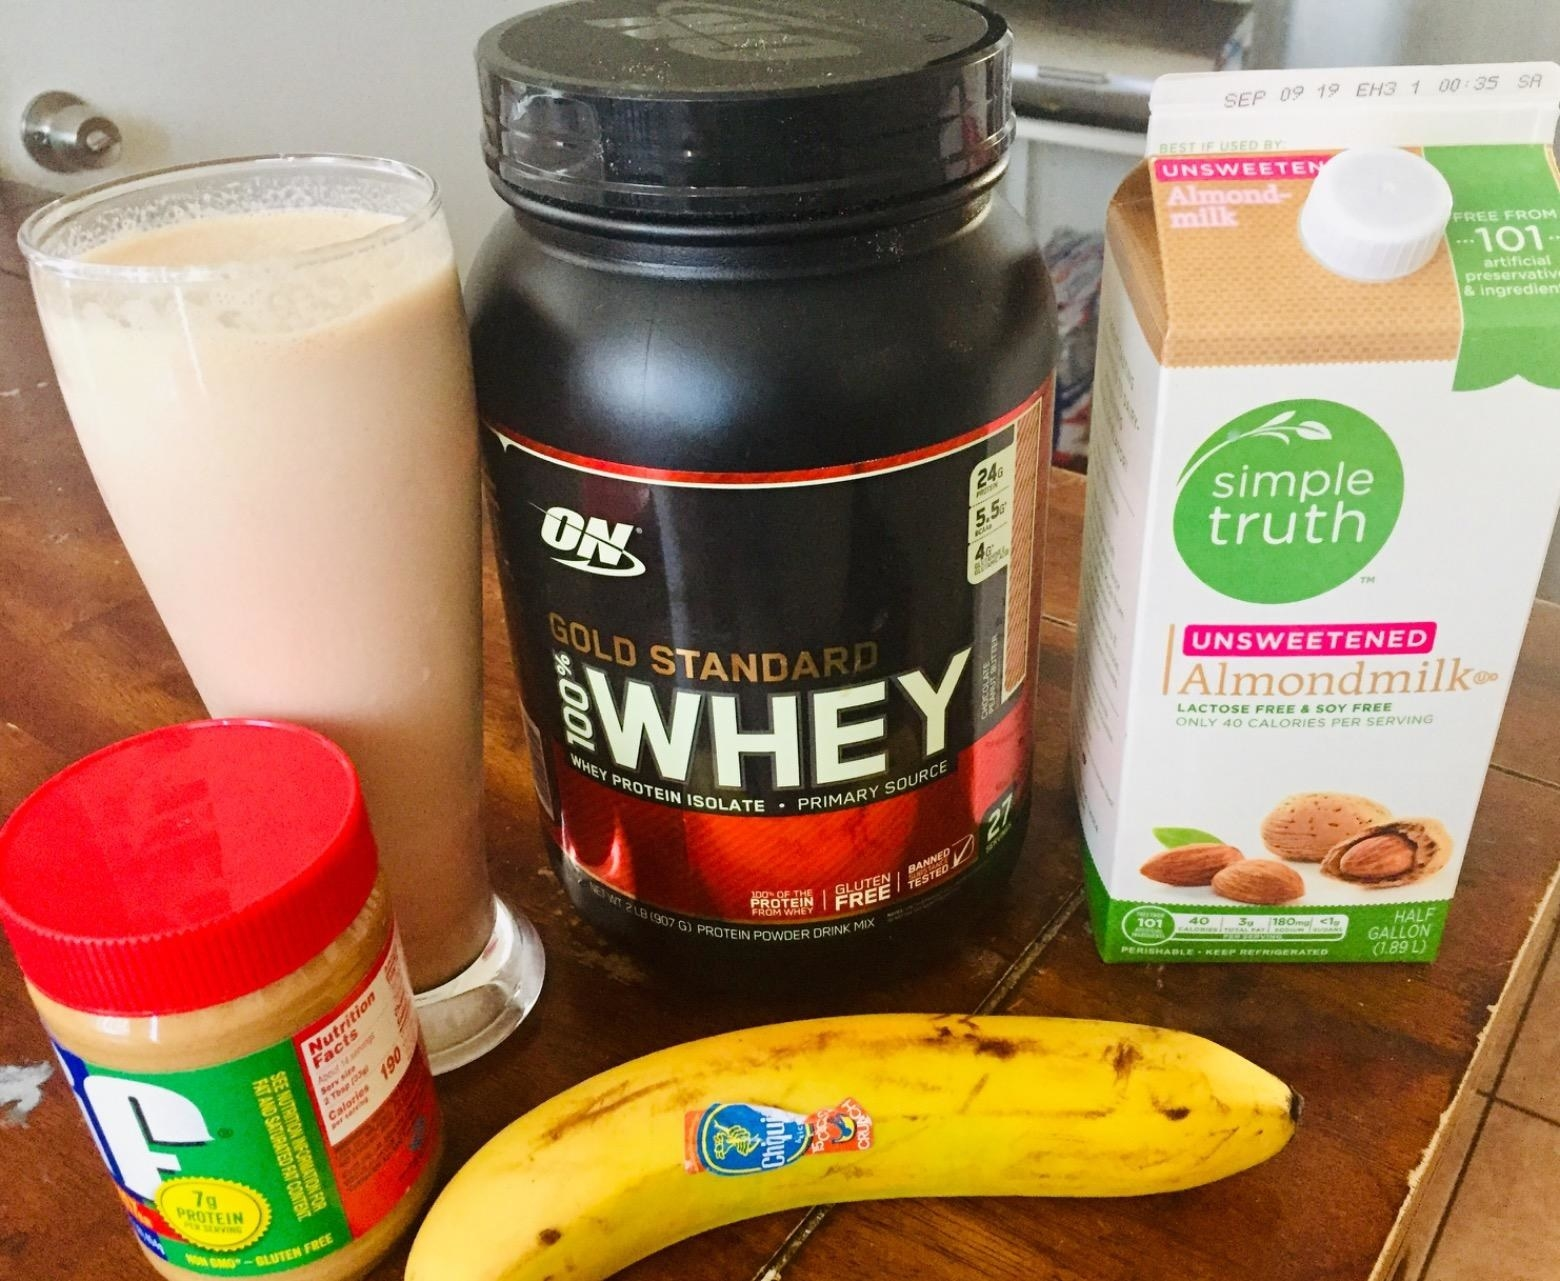 The protein powder and shake ingredients